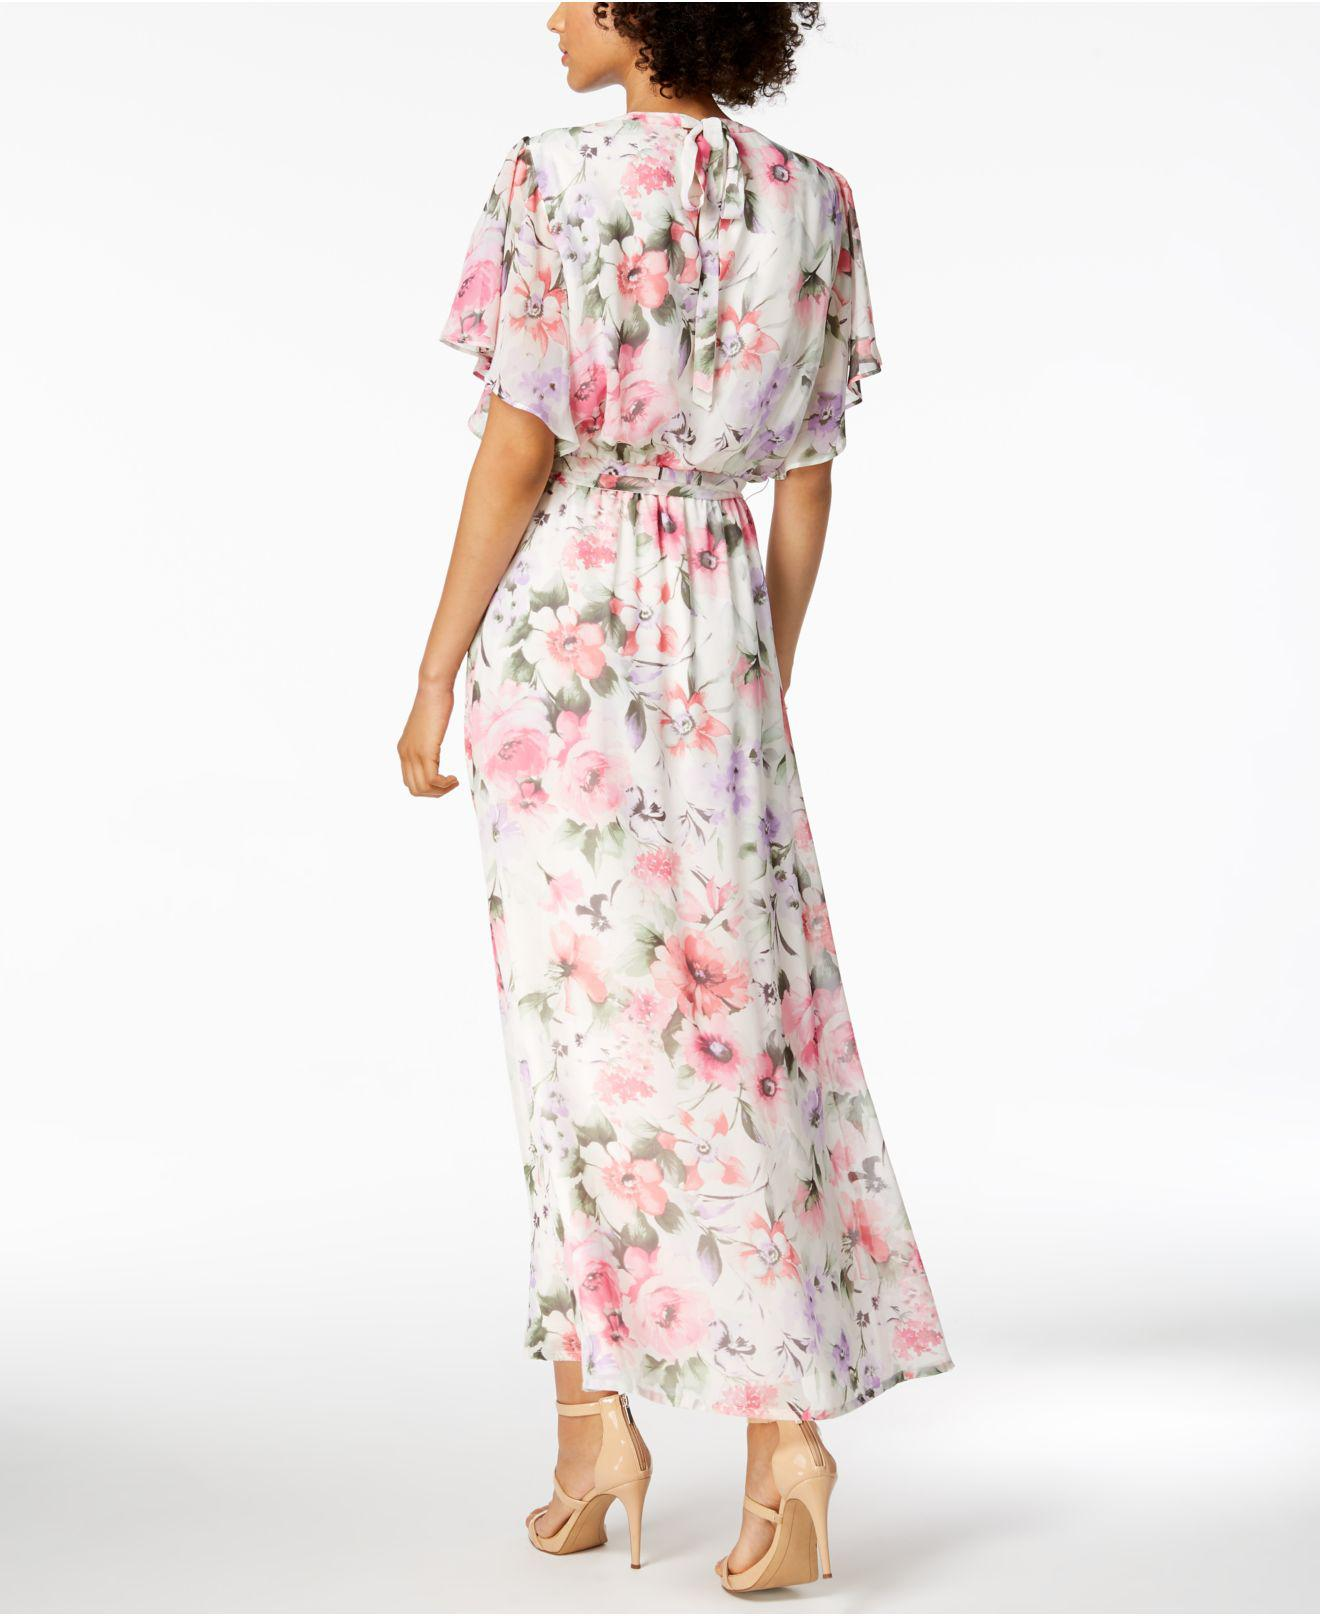 c739146c2e9 Lyst - Nine West Floral-print Belted Maxi Dress in Pink